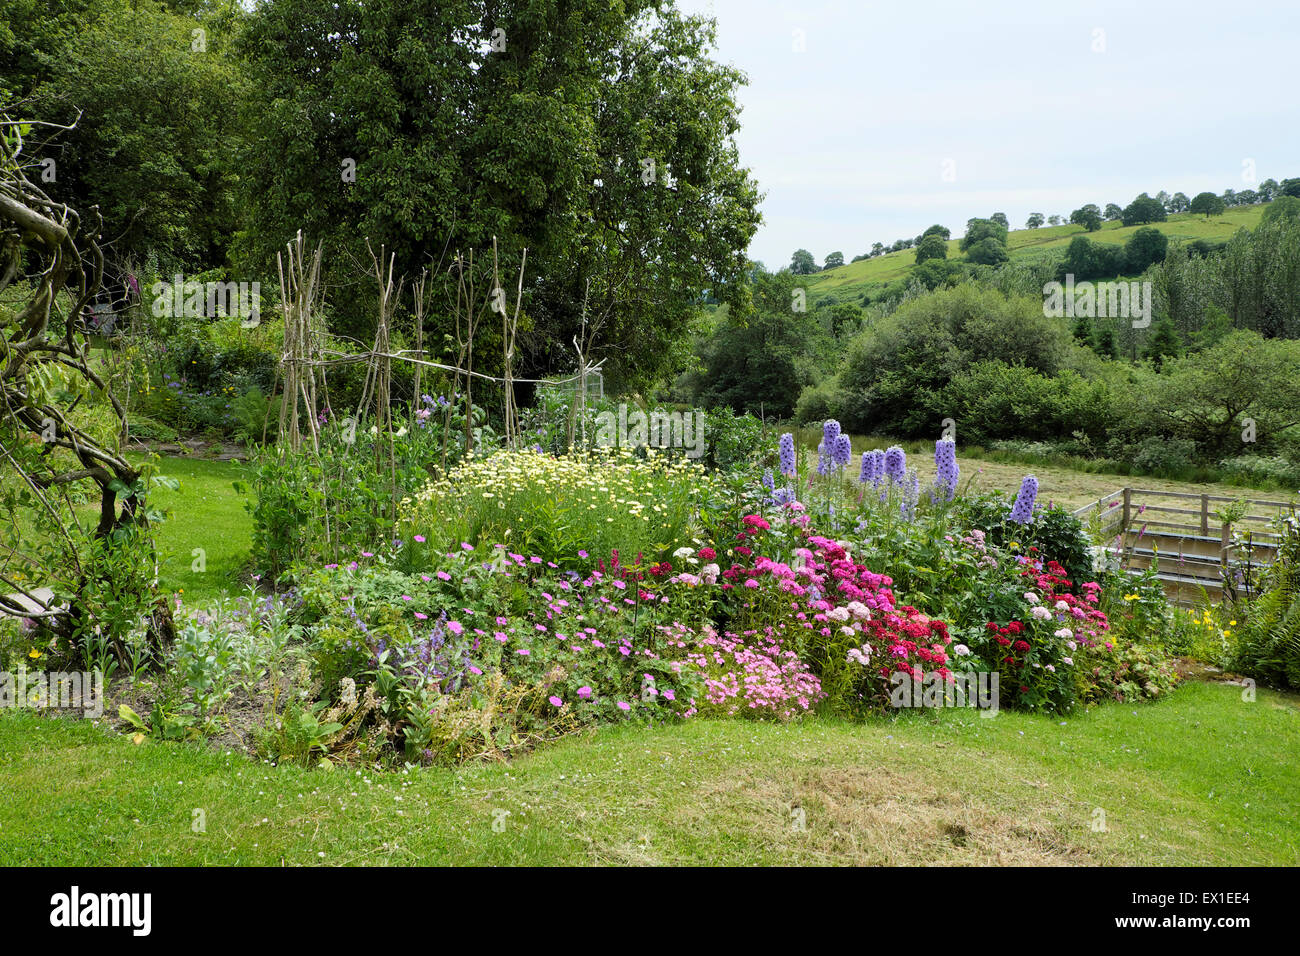 Colorful Perennials In A Herbaceous Flower Border In A